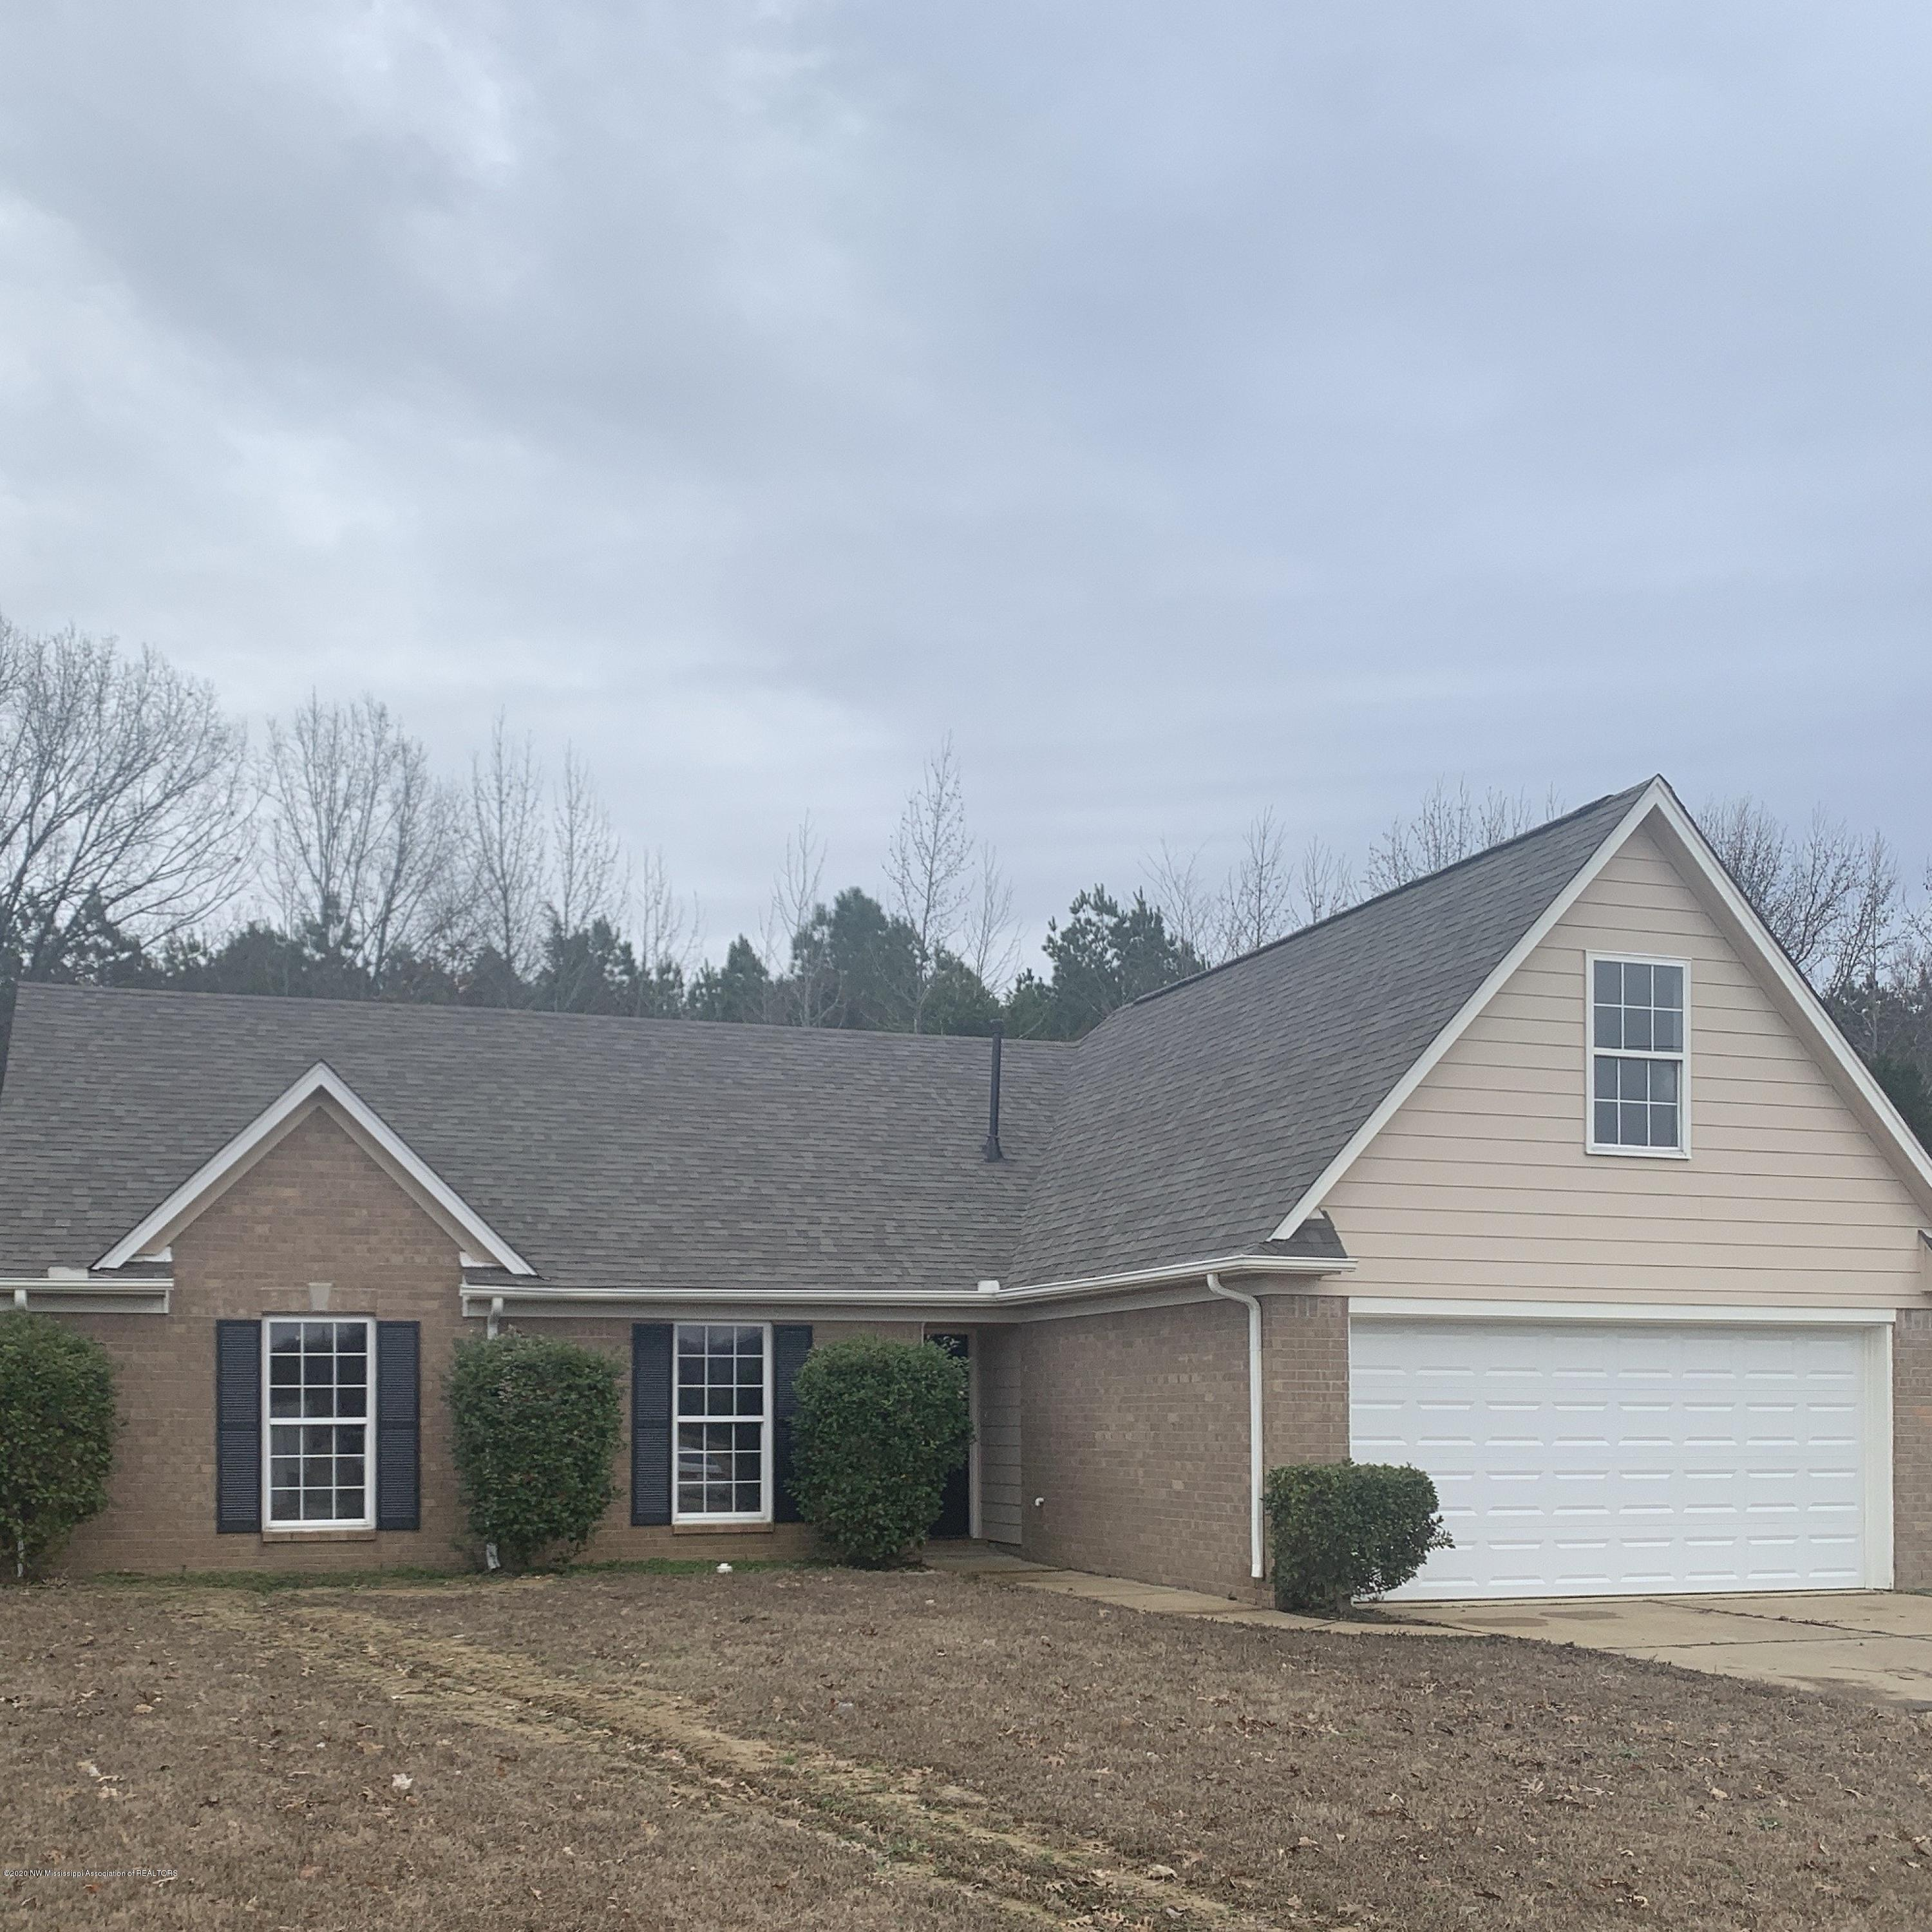 6850 White Hawk Lane, Olive Branch in DeSoto County, MS 38654 Home for Sale